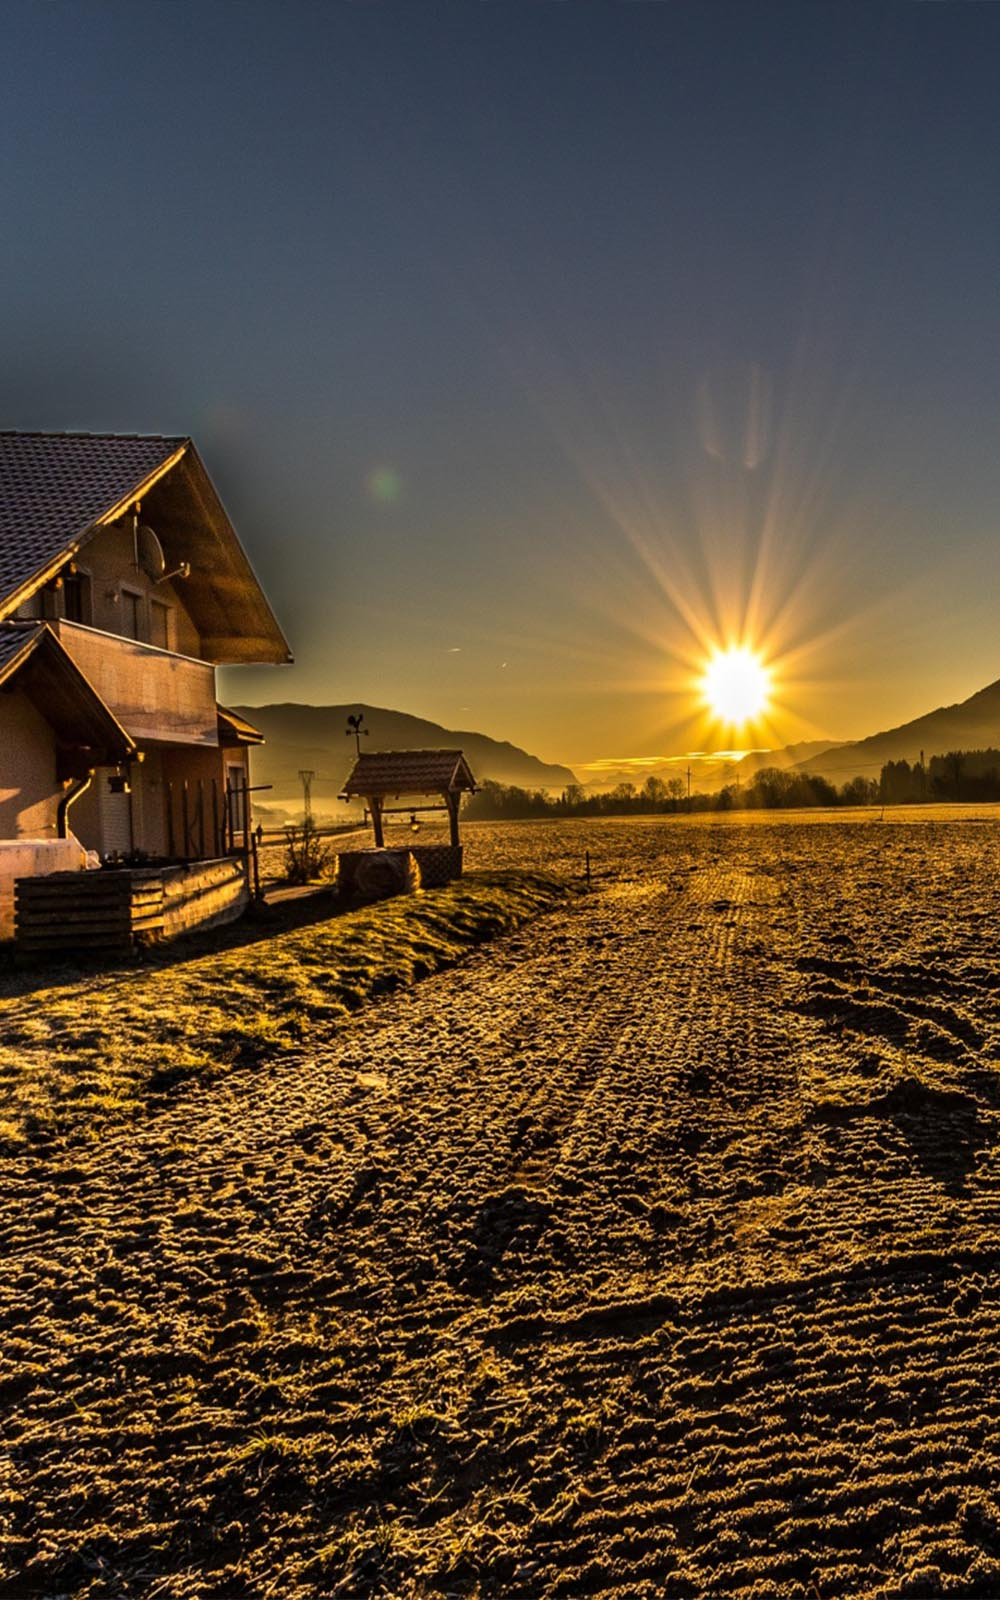 Frosty-Country-Morning-Sun-Rise-Mobile-Wallpaper